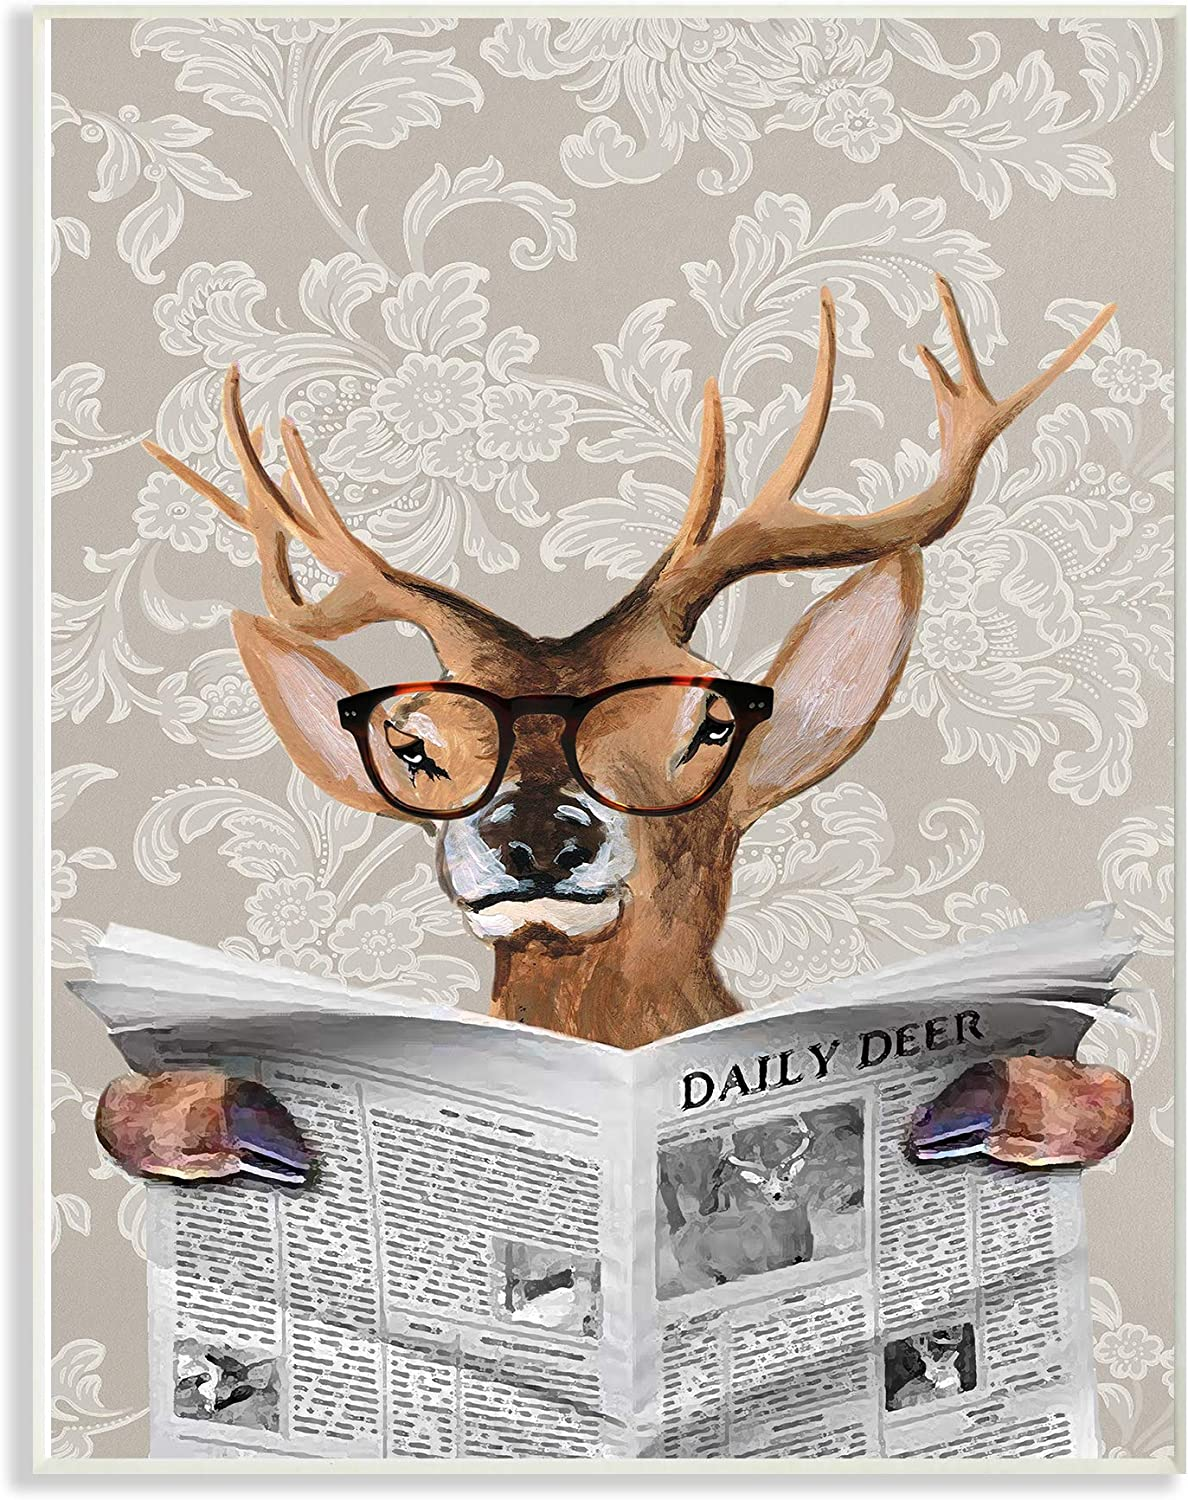 Stupell Industries Deer Reading Newspaper With Big Glasses Oversized Wall Plaque Art, 12 x 0.5 x 18, Multi-Color